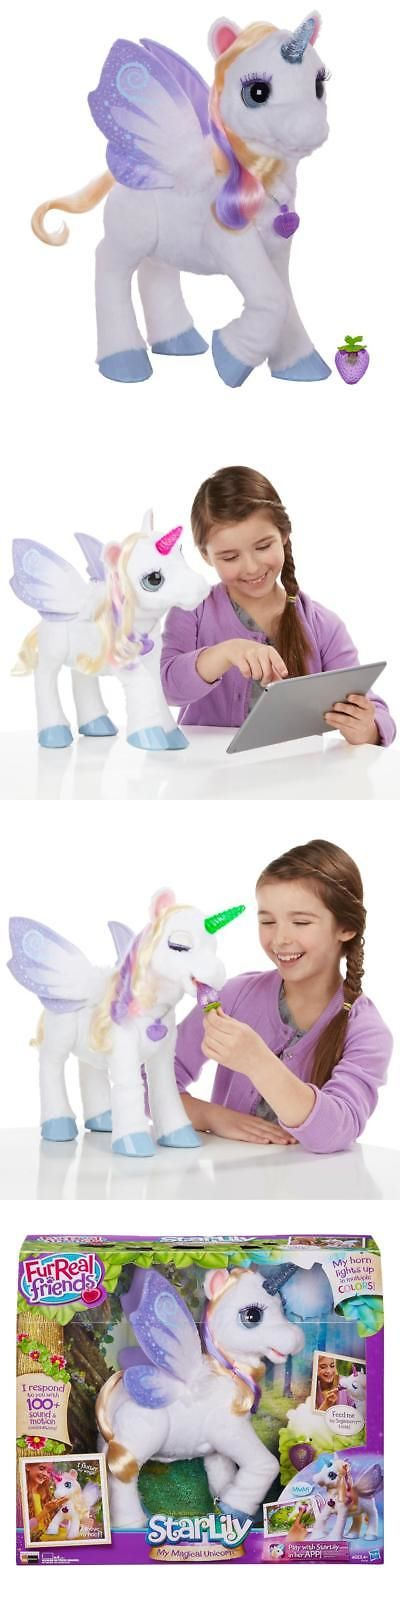 FurReal Friends 38288: Furreal Friends Starlily, My Magical Unicorn -> BUY IT NOW ONLY: $79.98 on eBay!